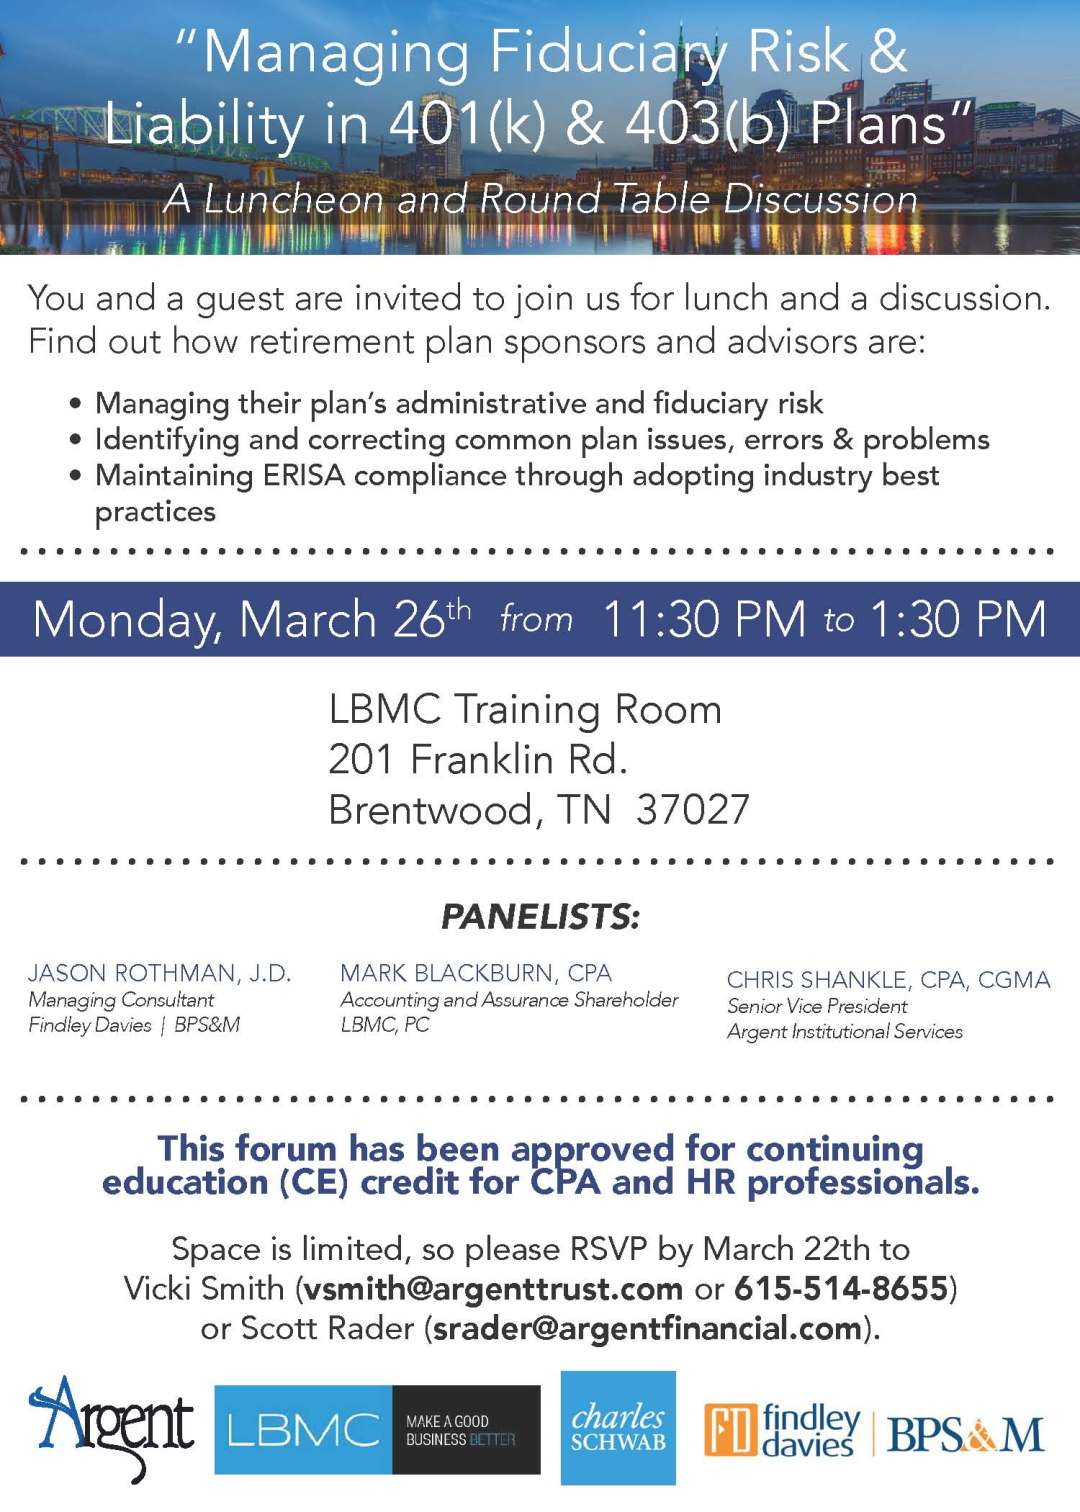 EVENT: Managing Fiduciary Risk & Liability in 401(k) & 403(b) Plans